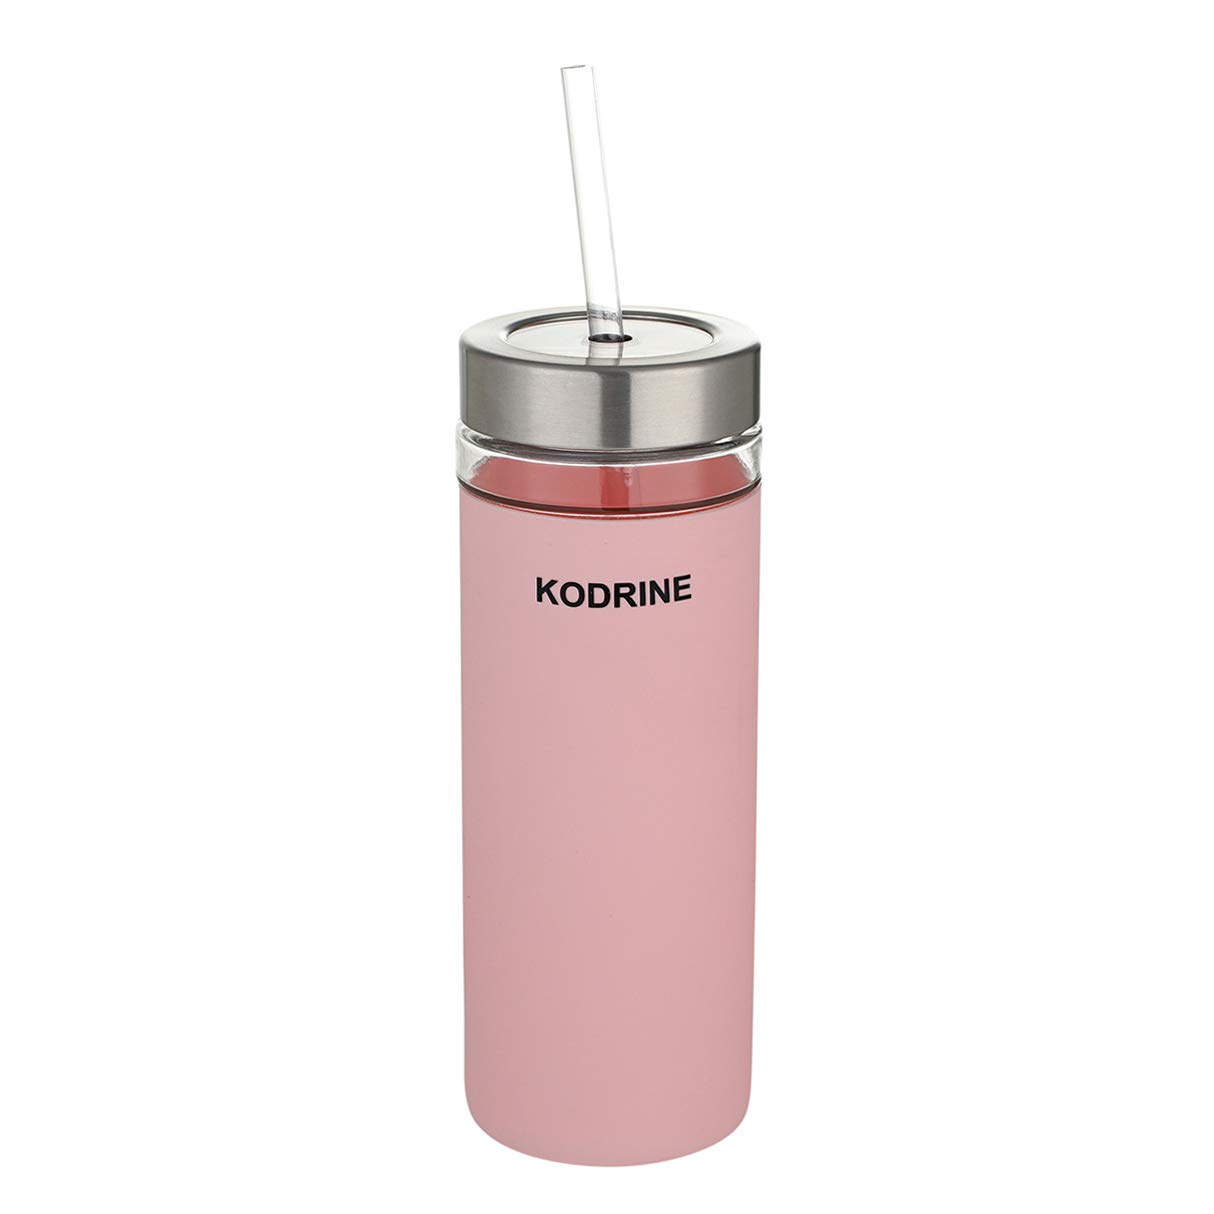 Glass tumbler with straw, 20oz Glass Water Bottle with Silicone Protective Sleeve - Stainless steel and plastic combination lid - BPA Free Pink